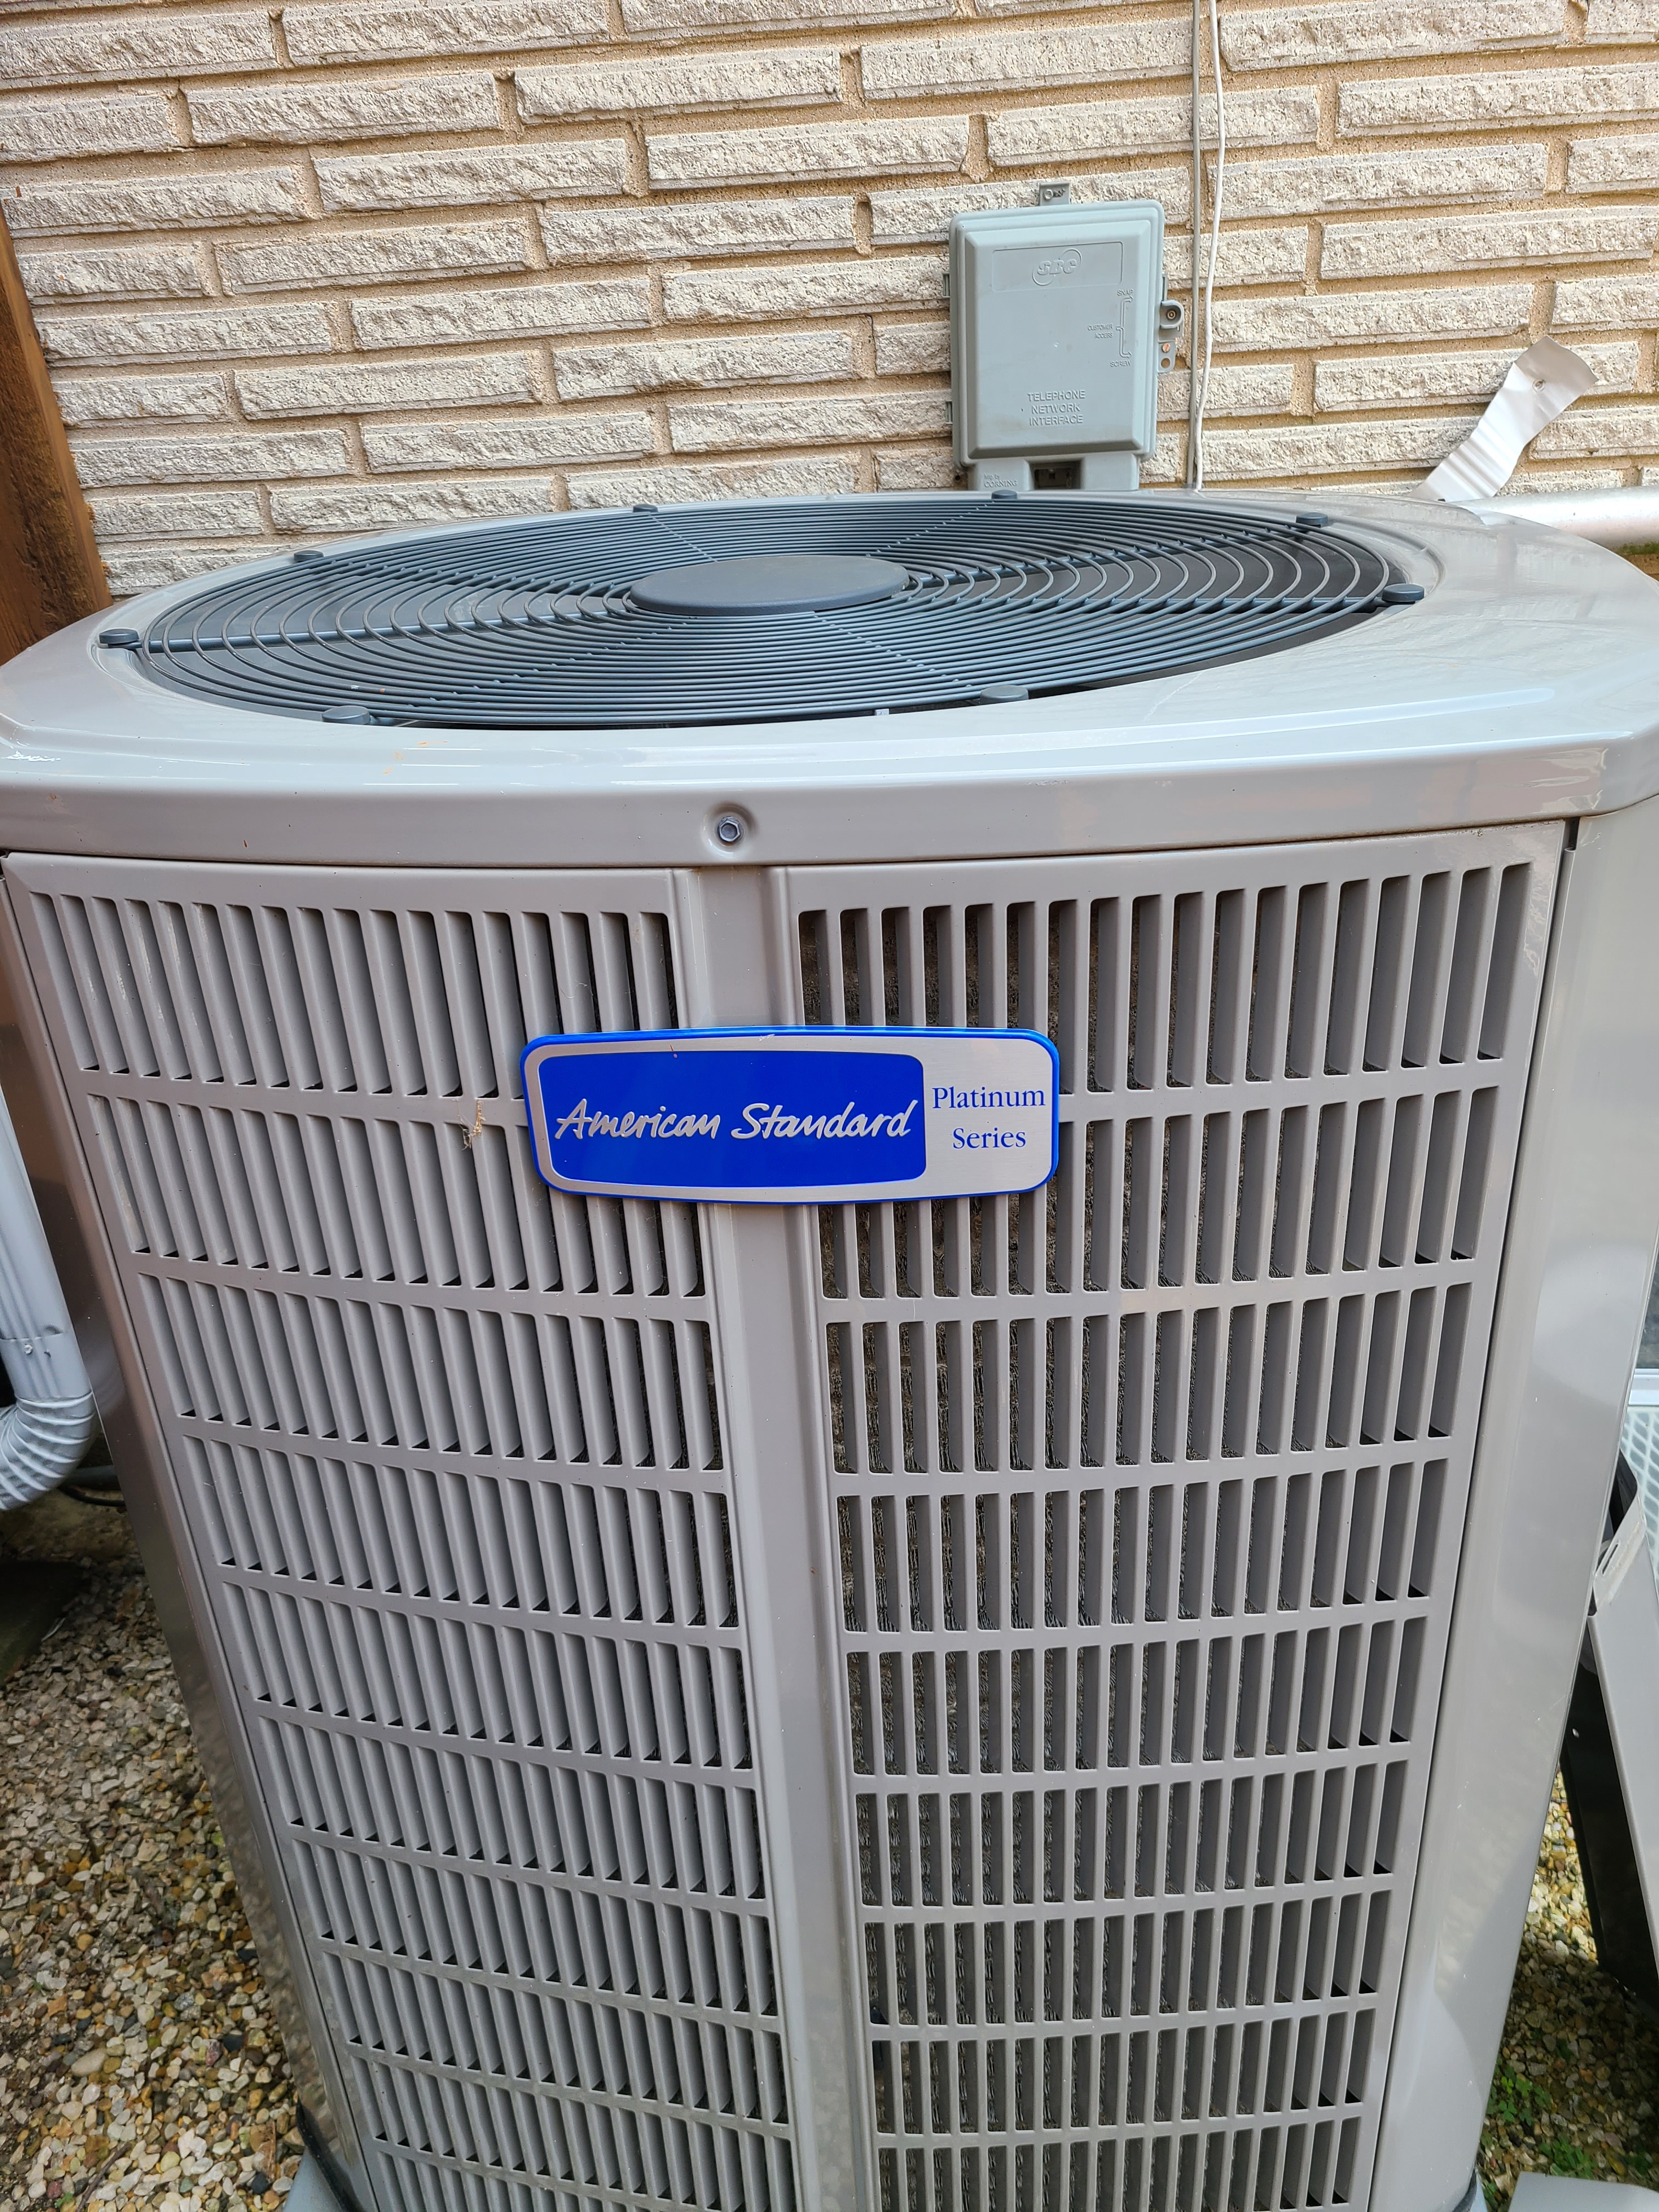 American Standard air-conditioning